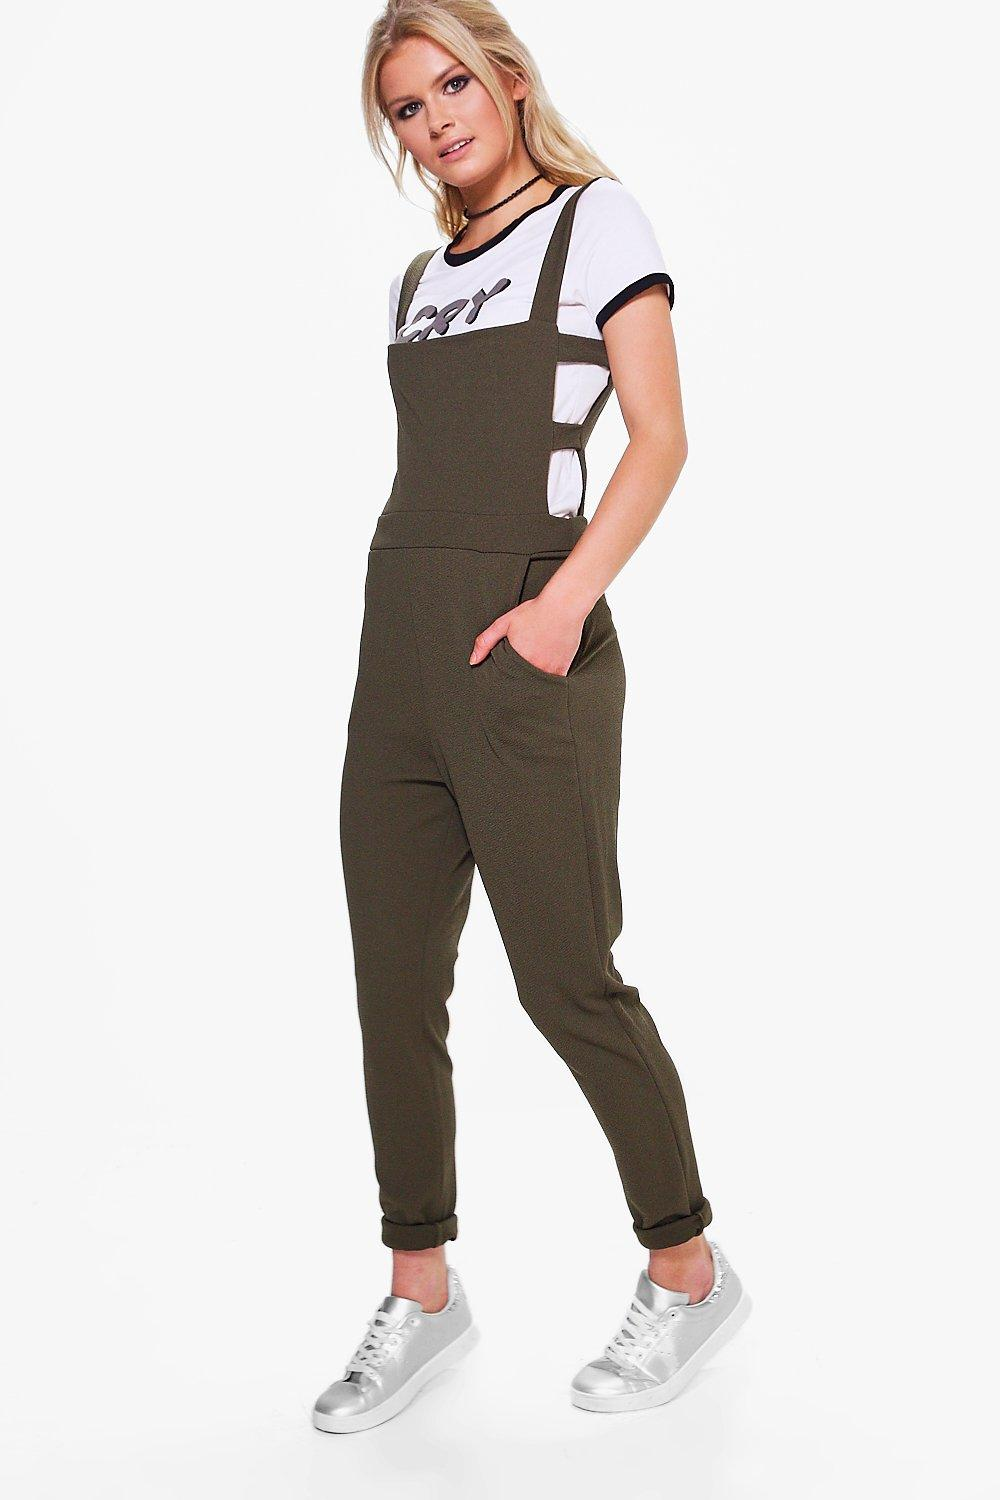 77c8cd1f51 Cut Side Pinafore Style Dungarees. Hover to zoom